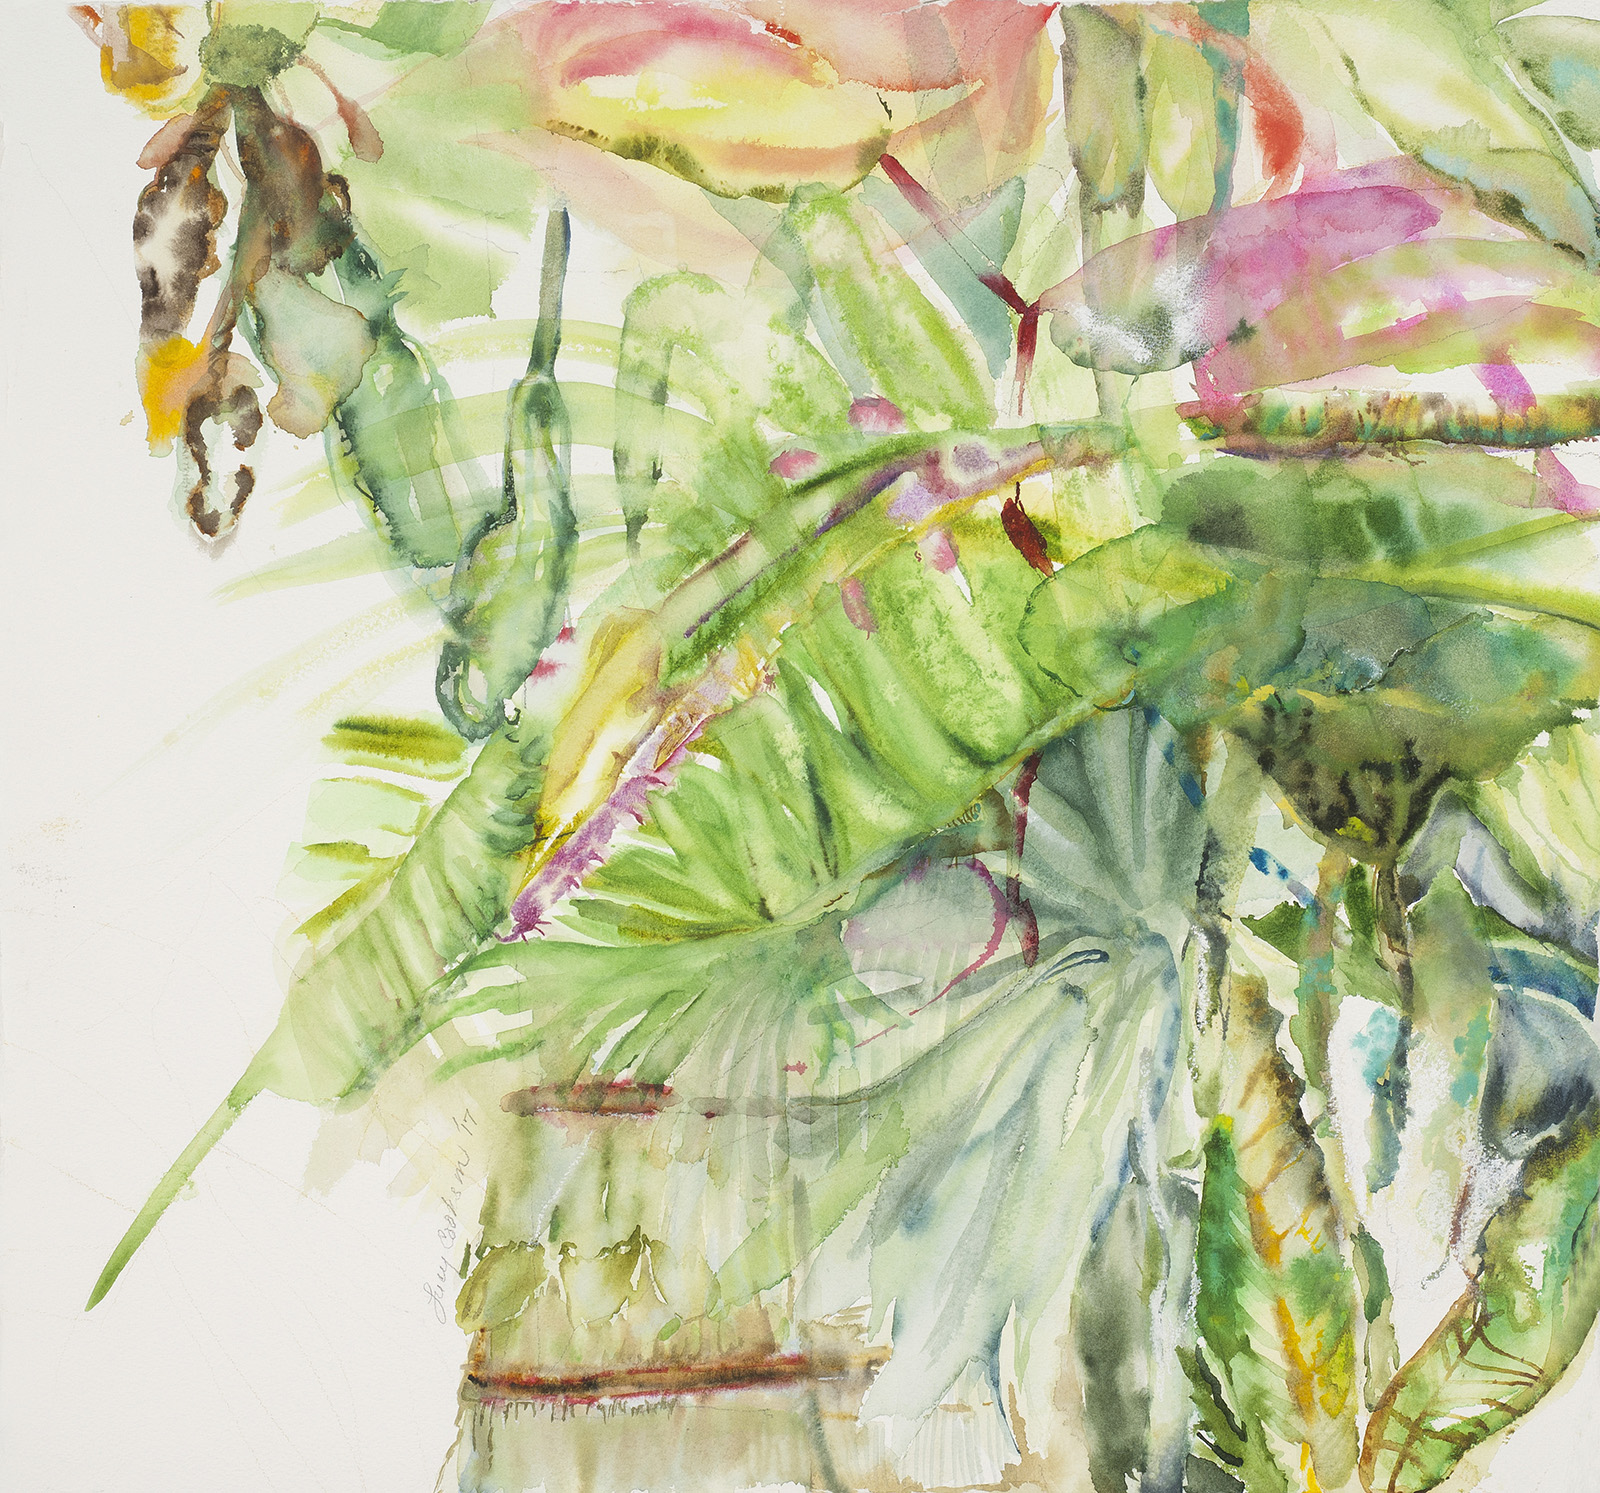 Palm and Heliconia, 2017, Watercolor on paper, 30 x 31 in.